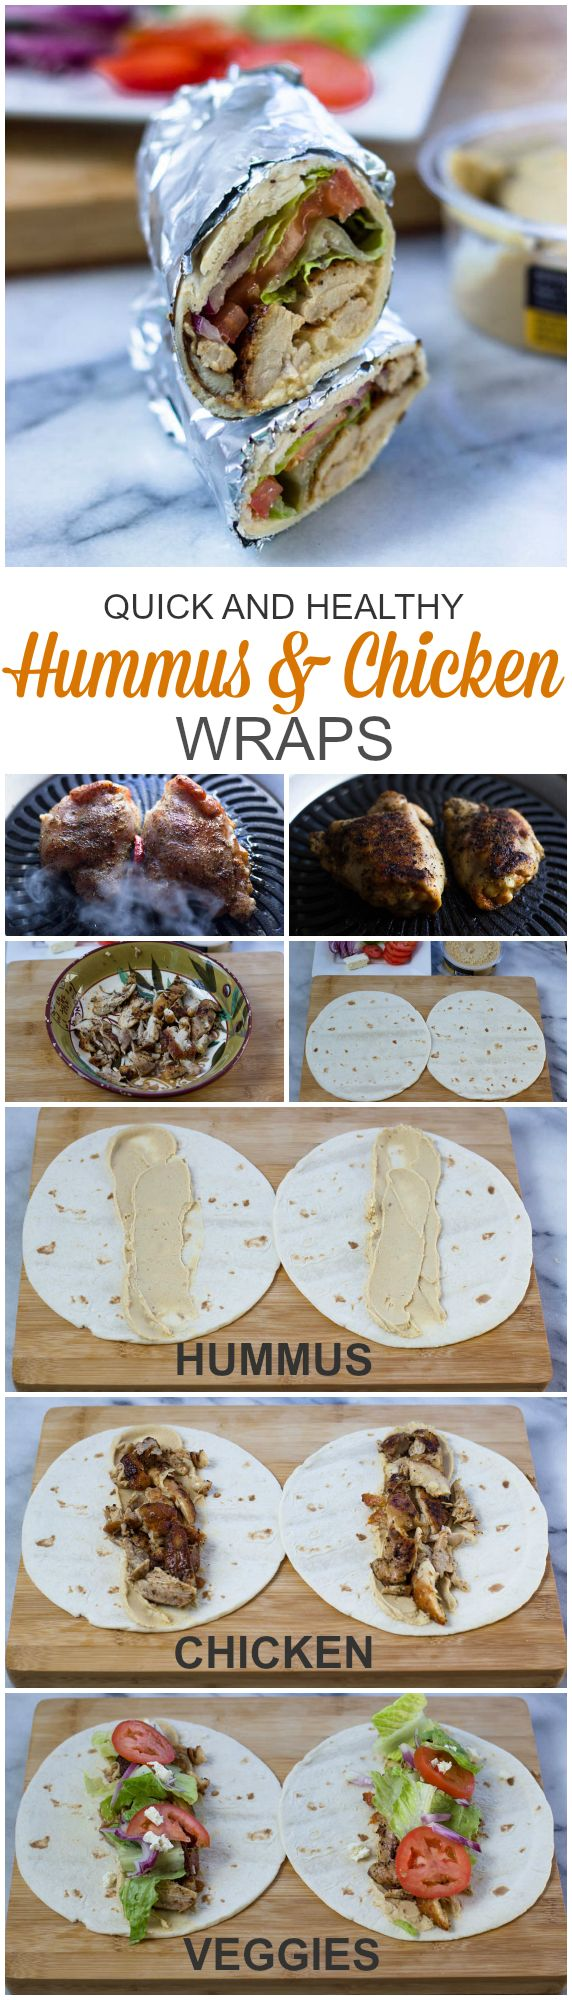 Hummus and chicken Wraps (Quick, Healthy, Adaptable) | Brunch Time Baker